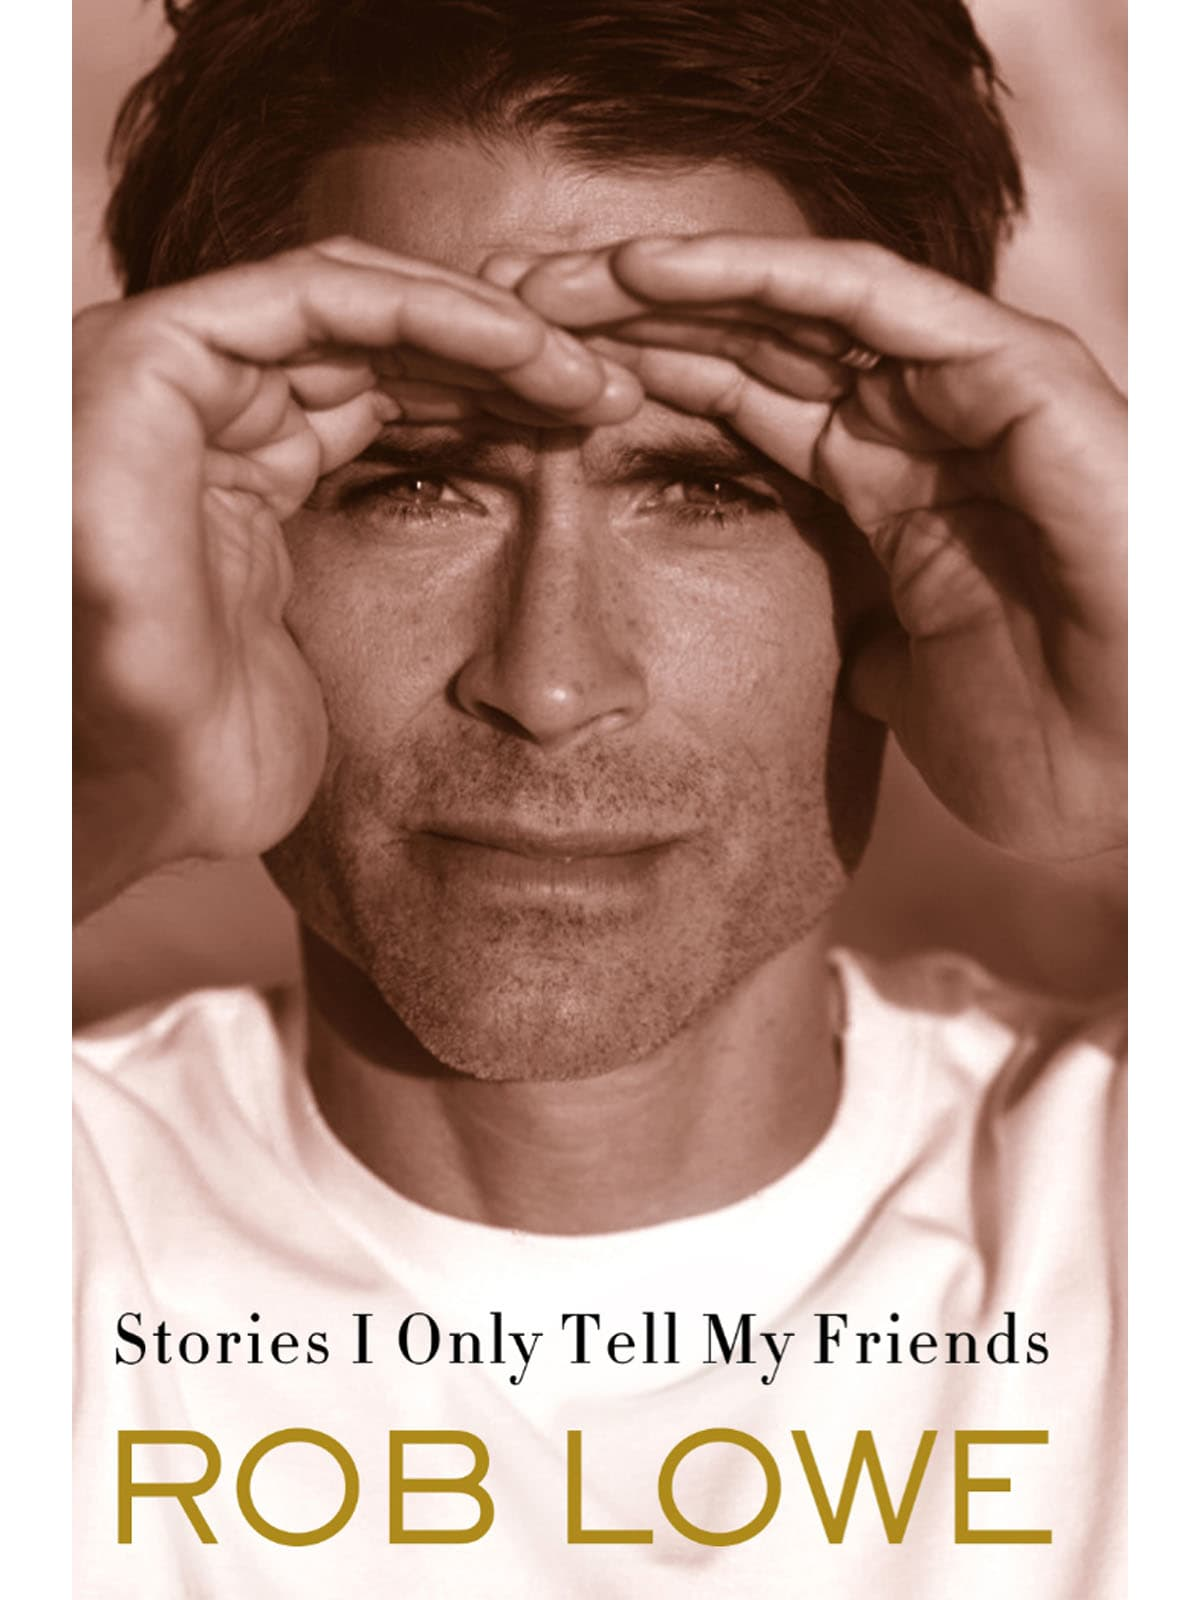 News_Rob Lowe_book cover_book